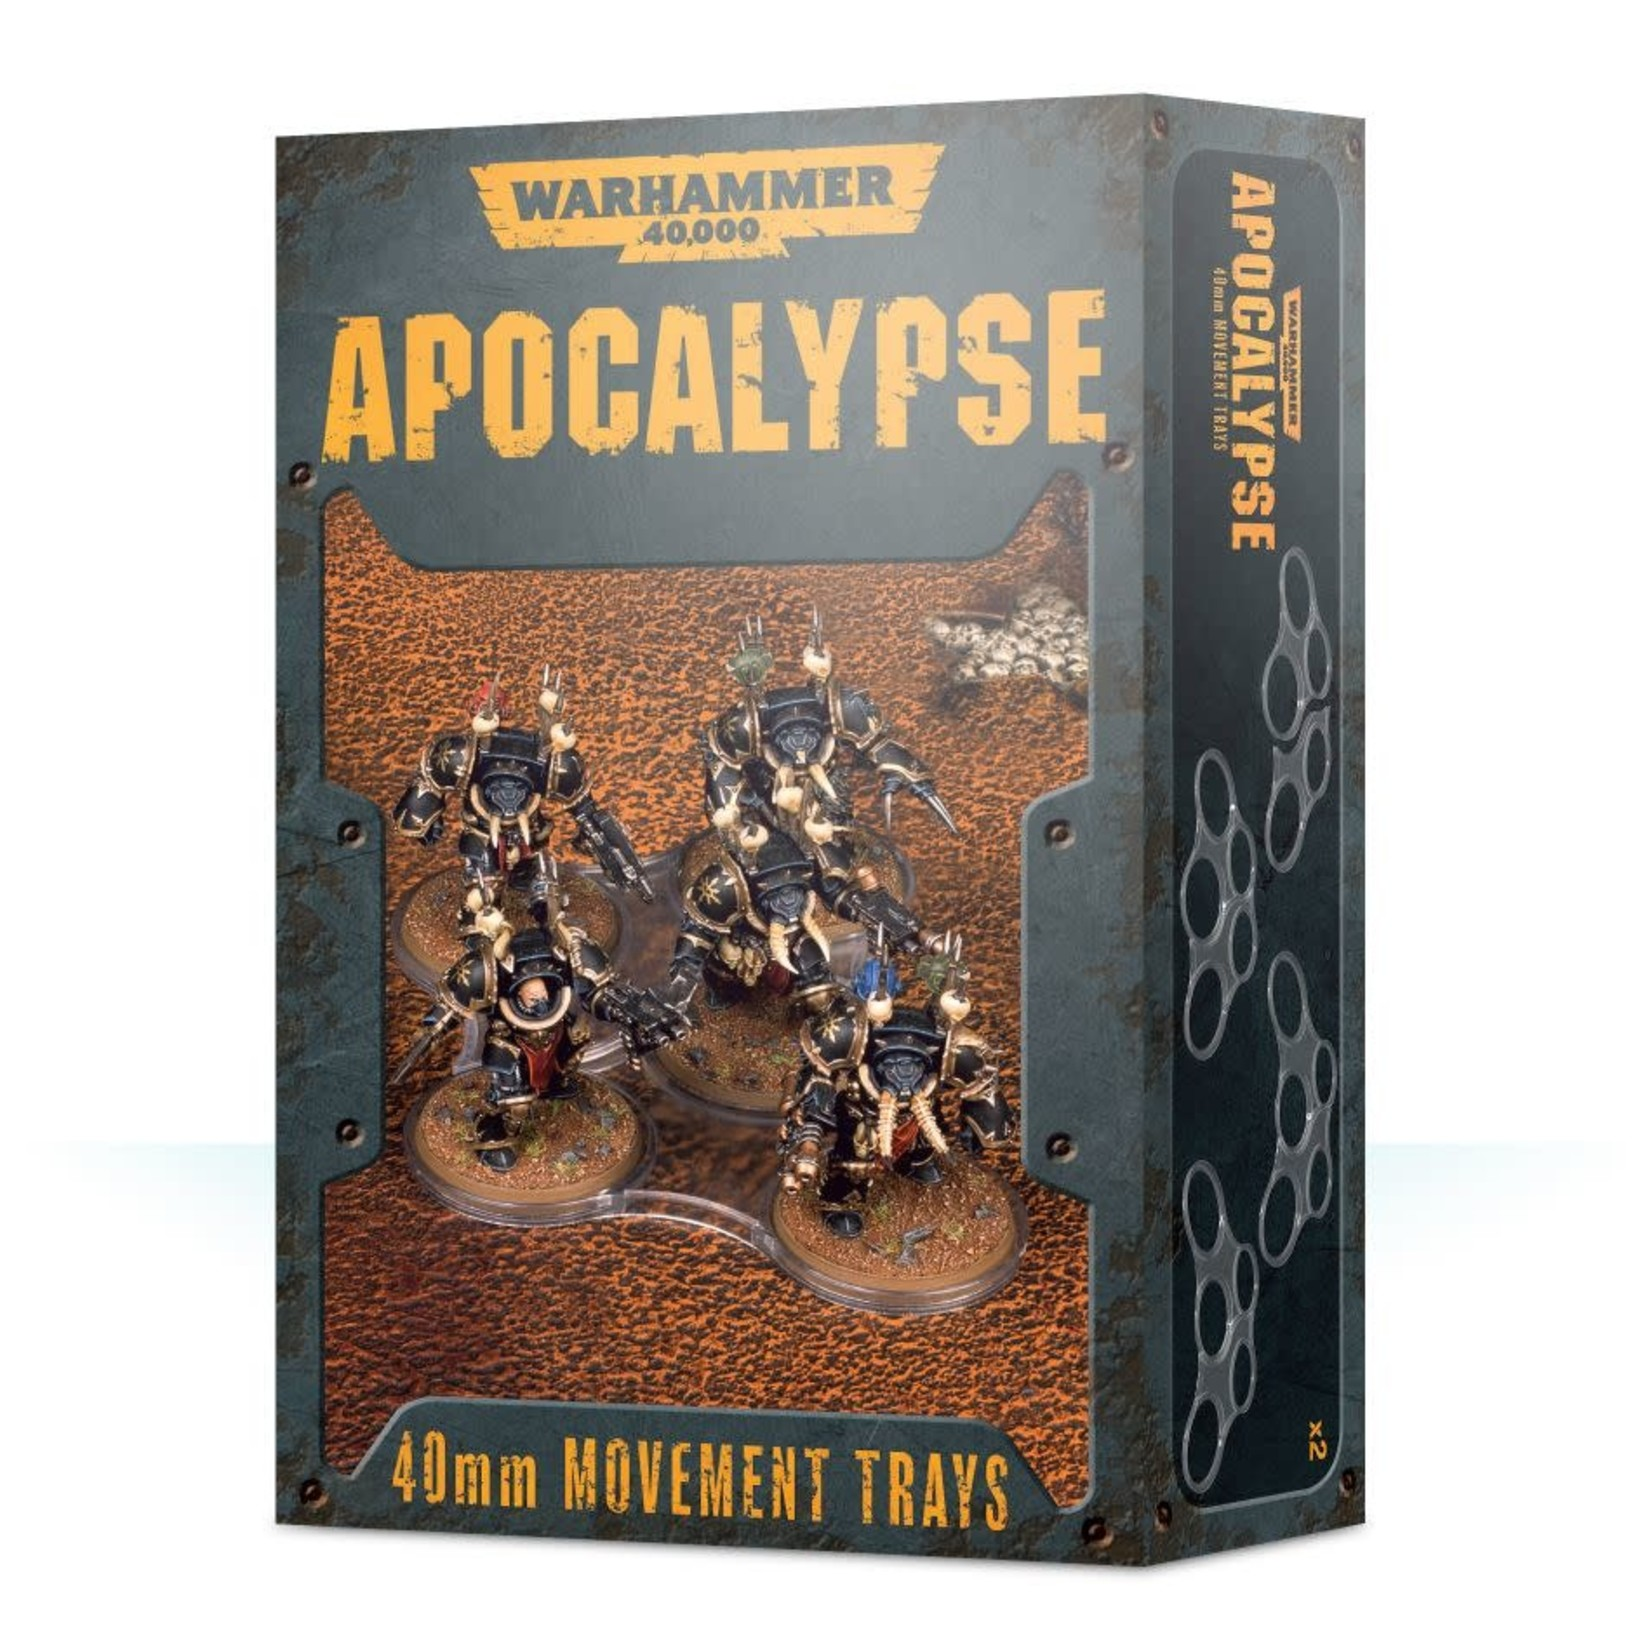 Games Workshop Warhammer 40k Apocalypse: 40mm Movement Trays